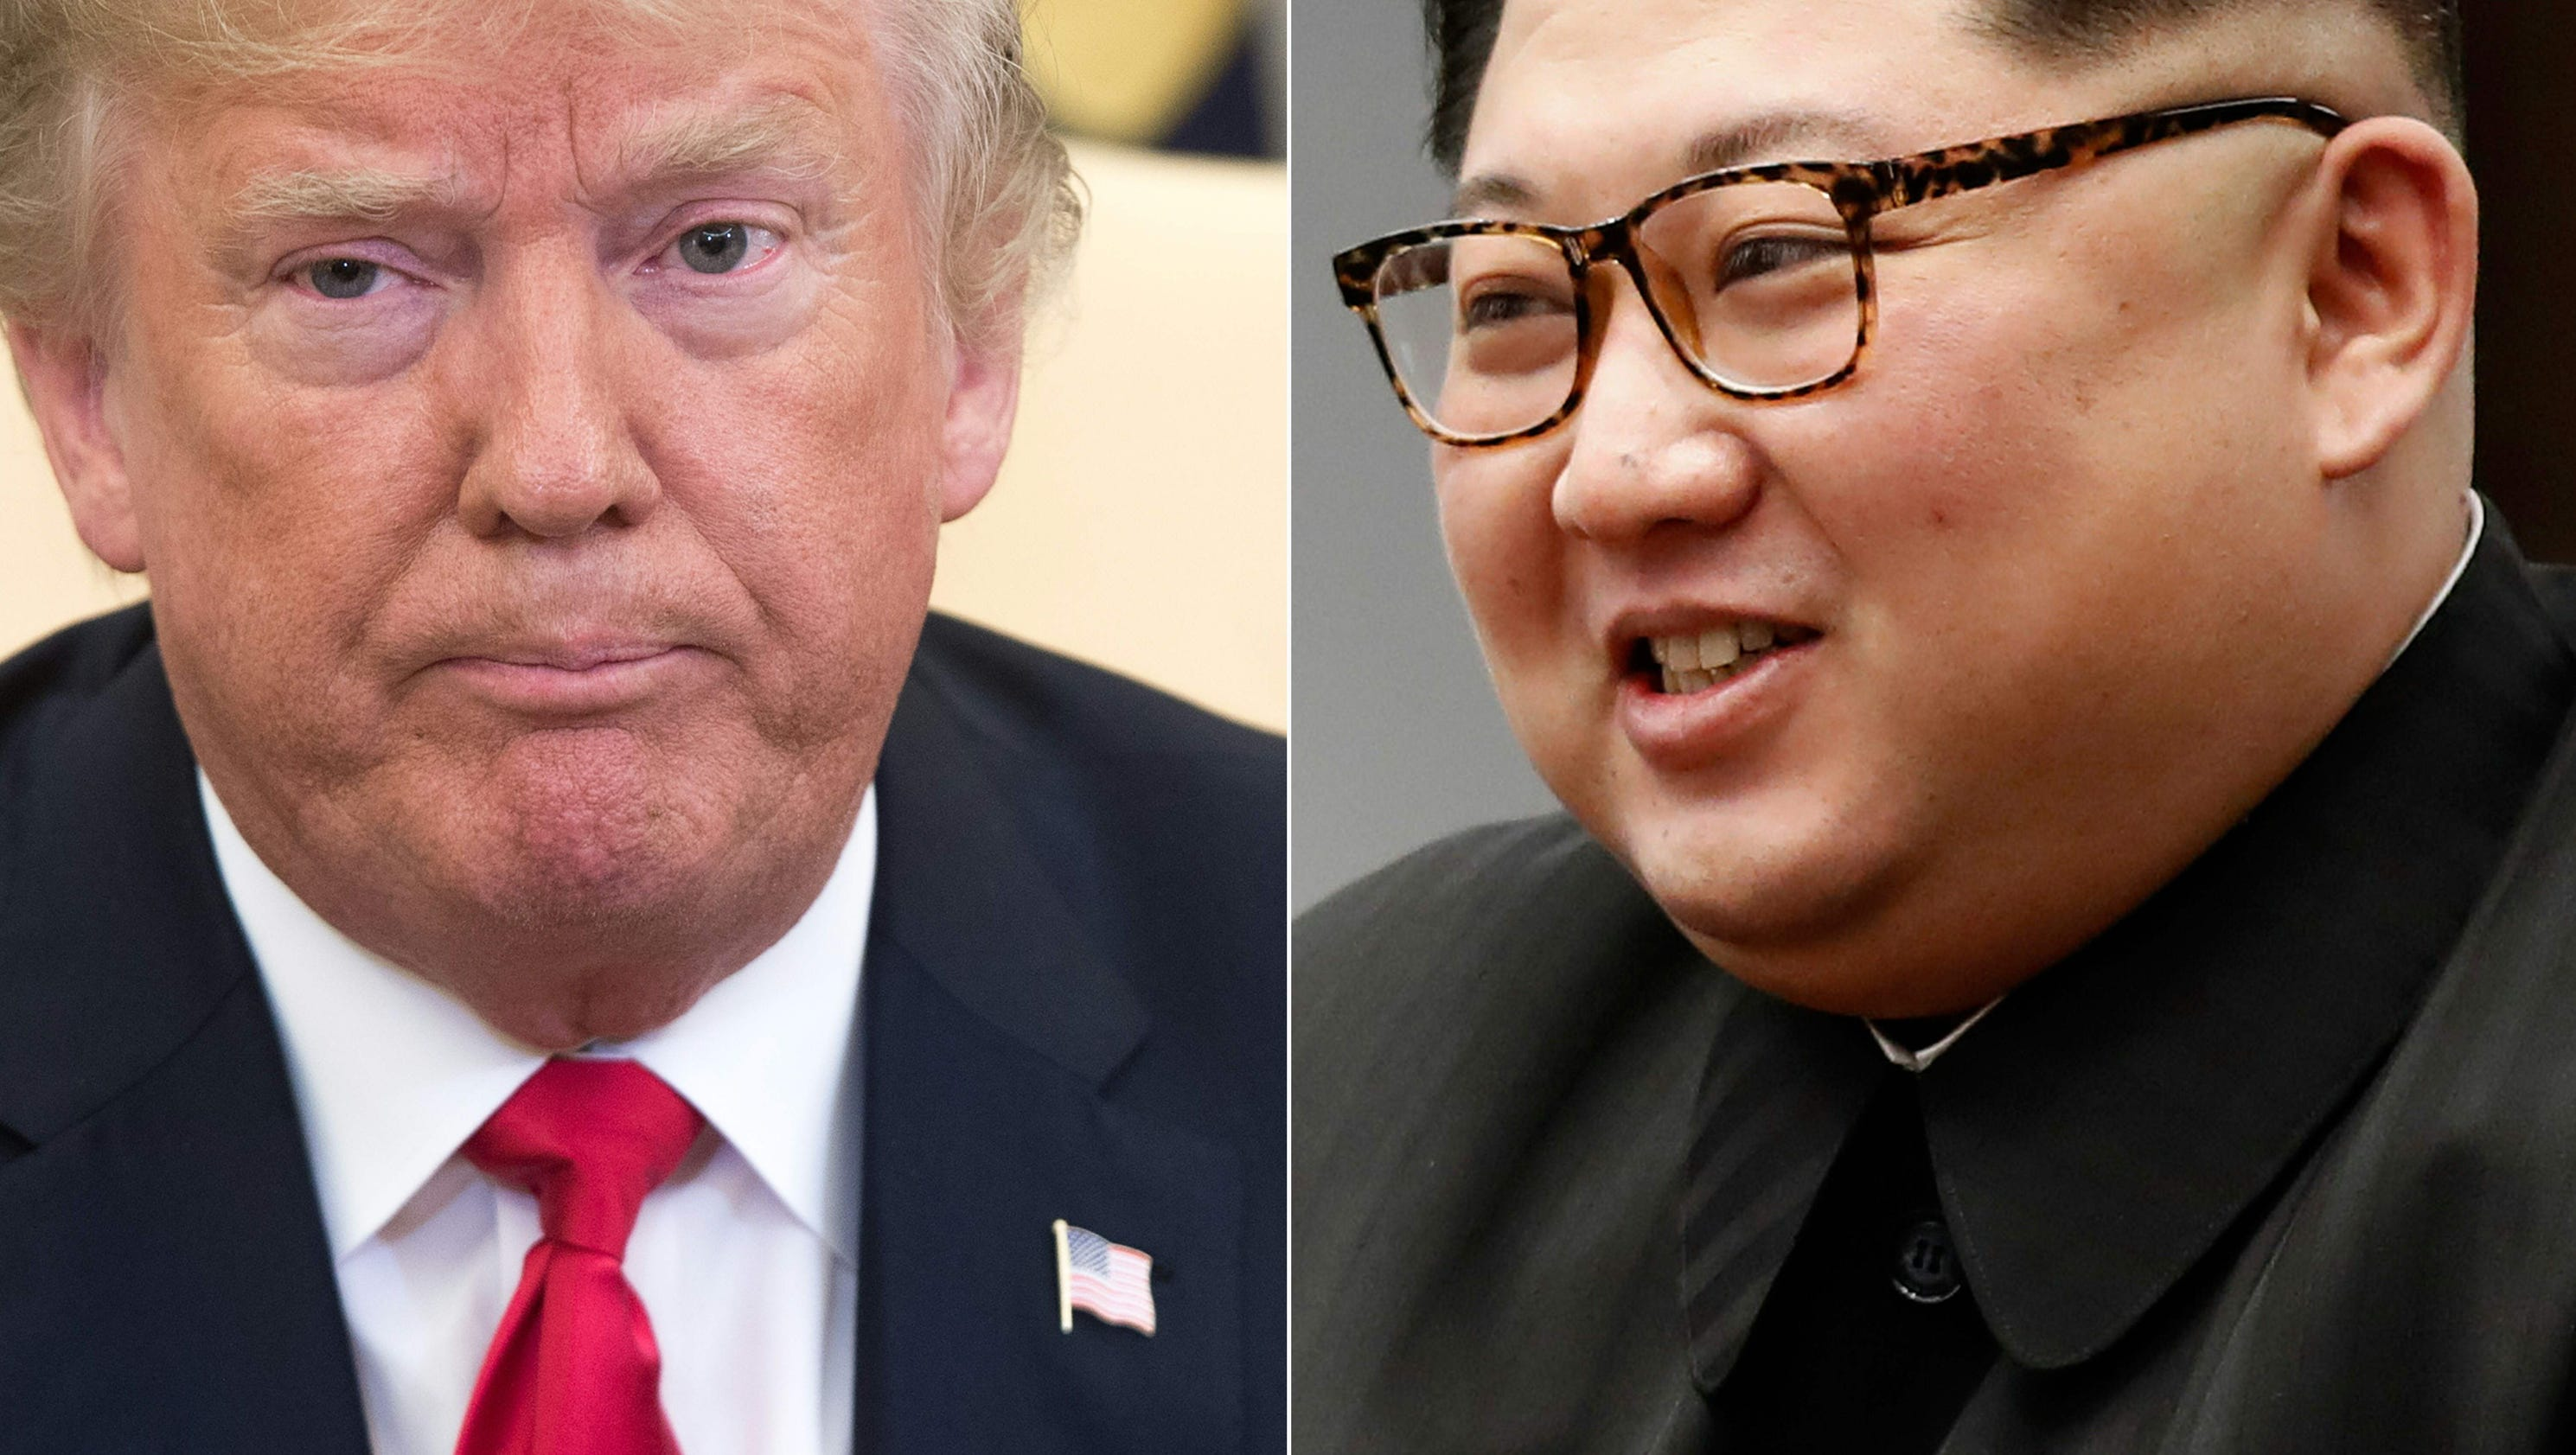 North Korea: Trump's cancellation of meeting was 'unexpected' but we're still willing to talk